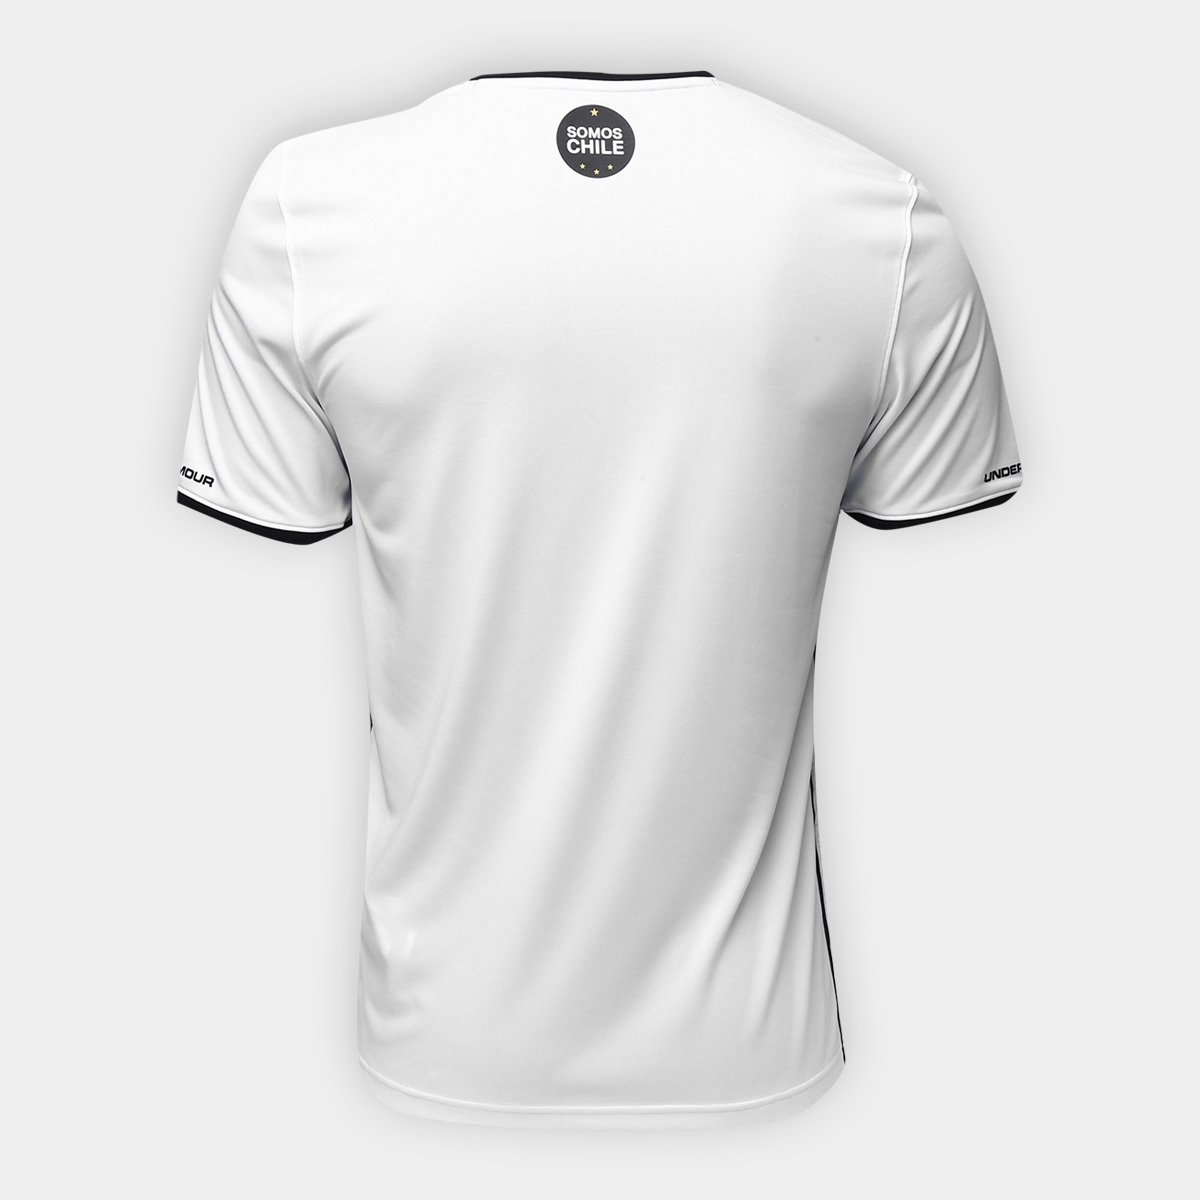 detailed look 1b939 f27c7 Camisa Colo-Colo Home 2018 s/n° - Torcedor Under Armour Masculina